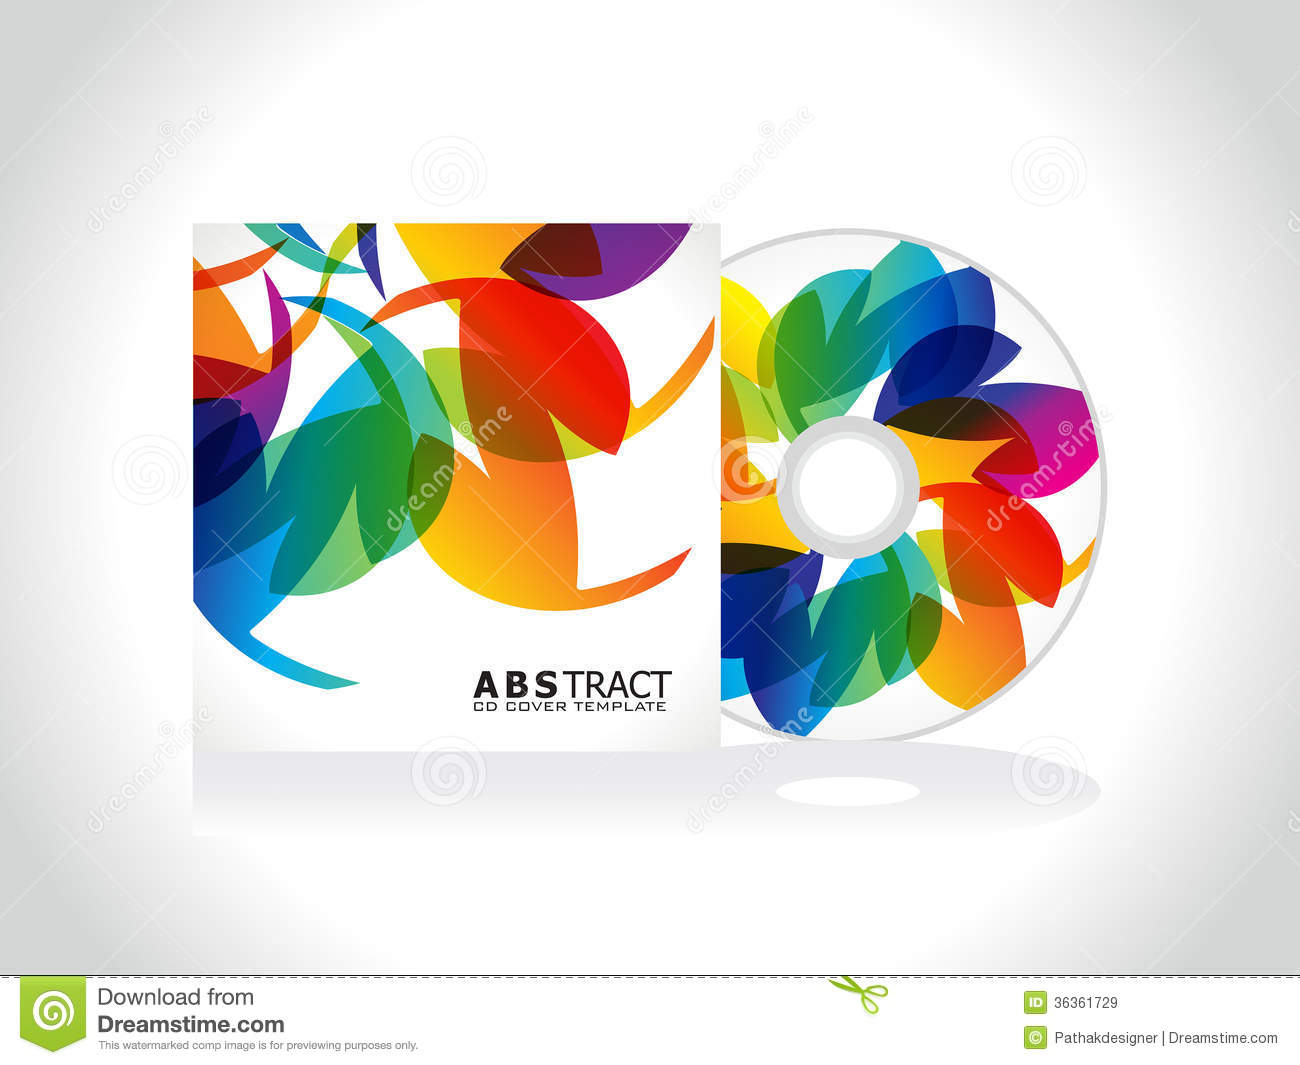 Abstract Colorful Cd Cover Template Royalty Free Stock